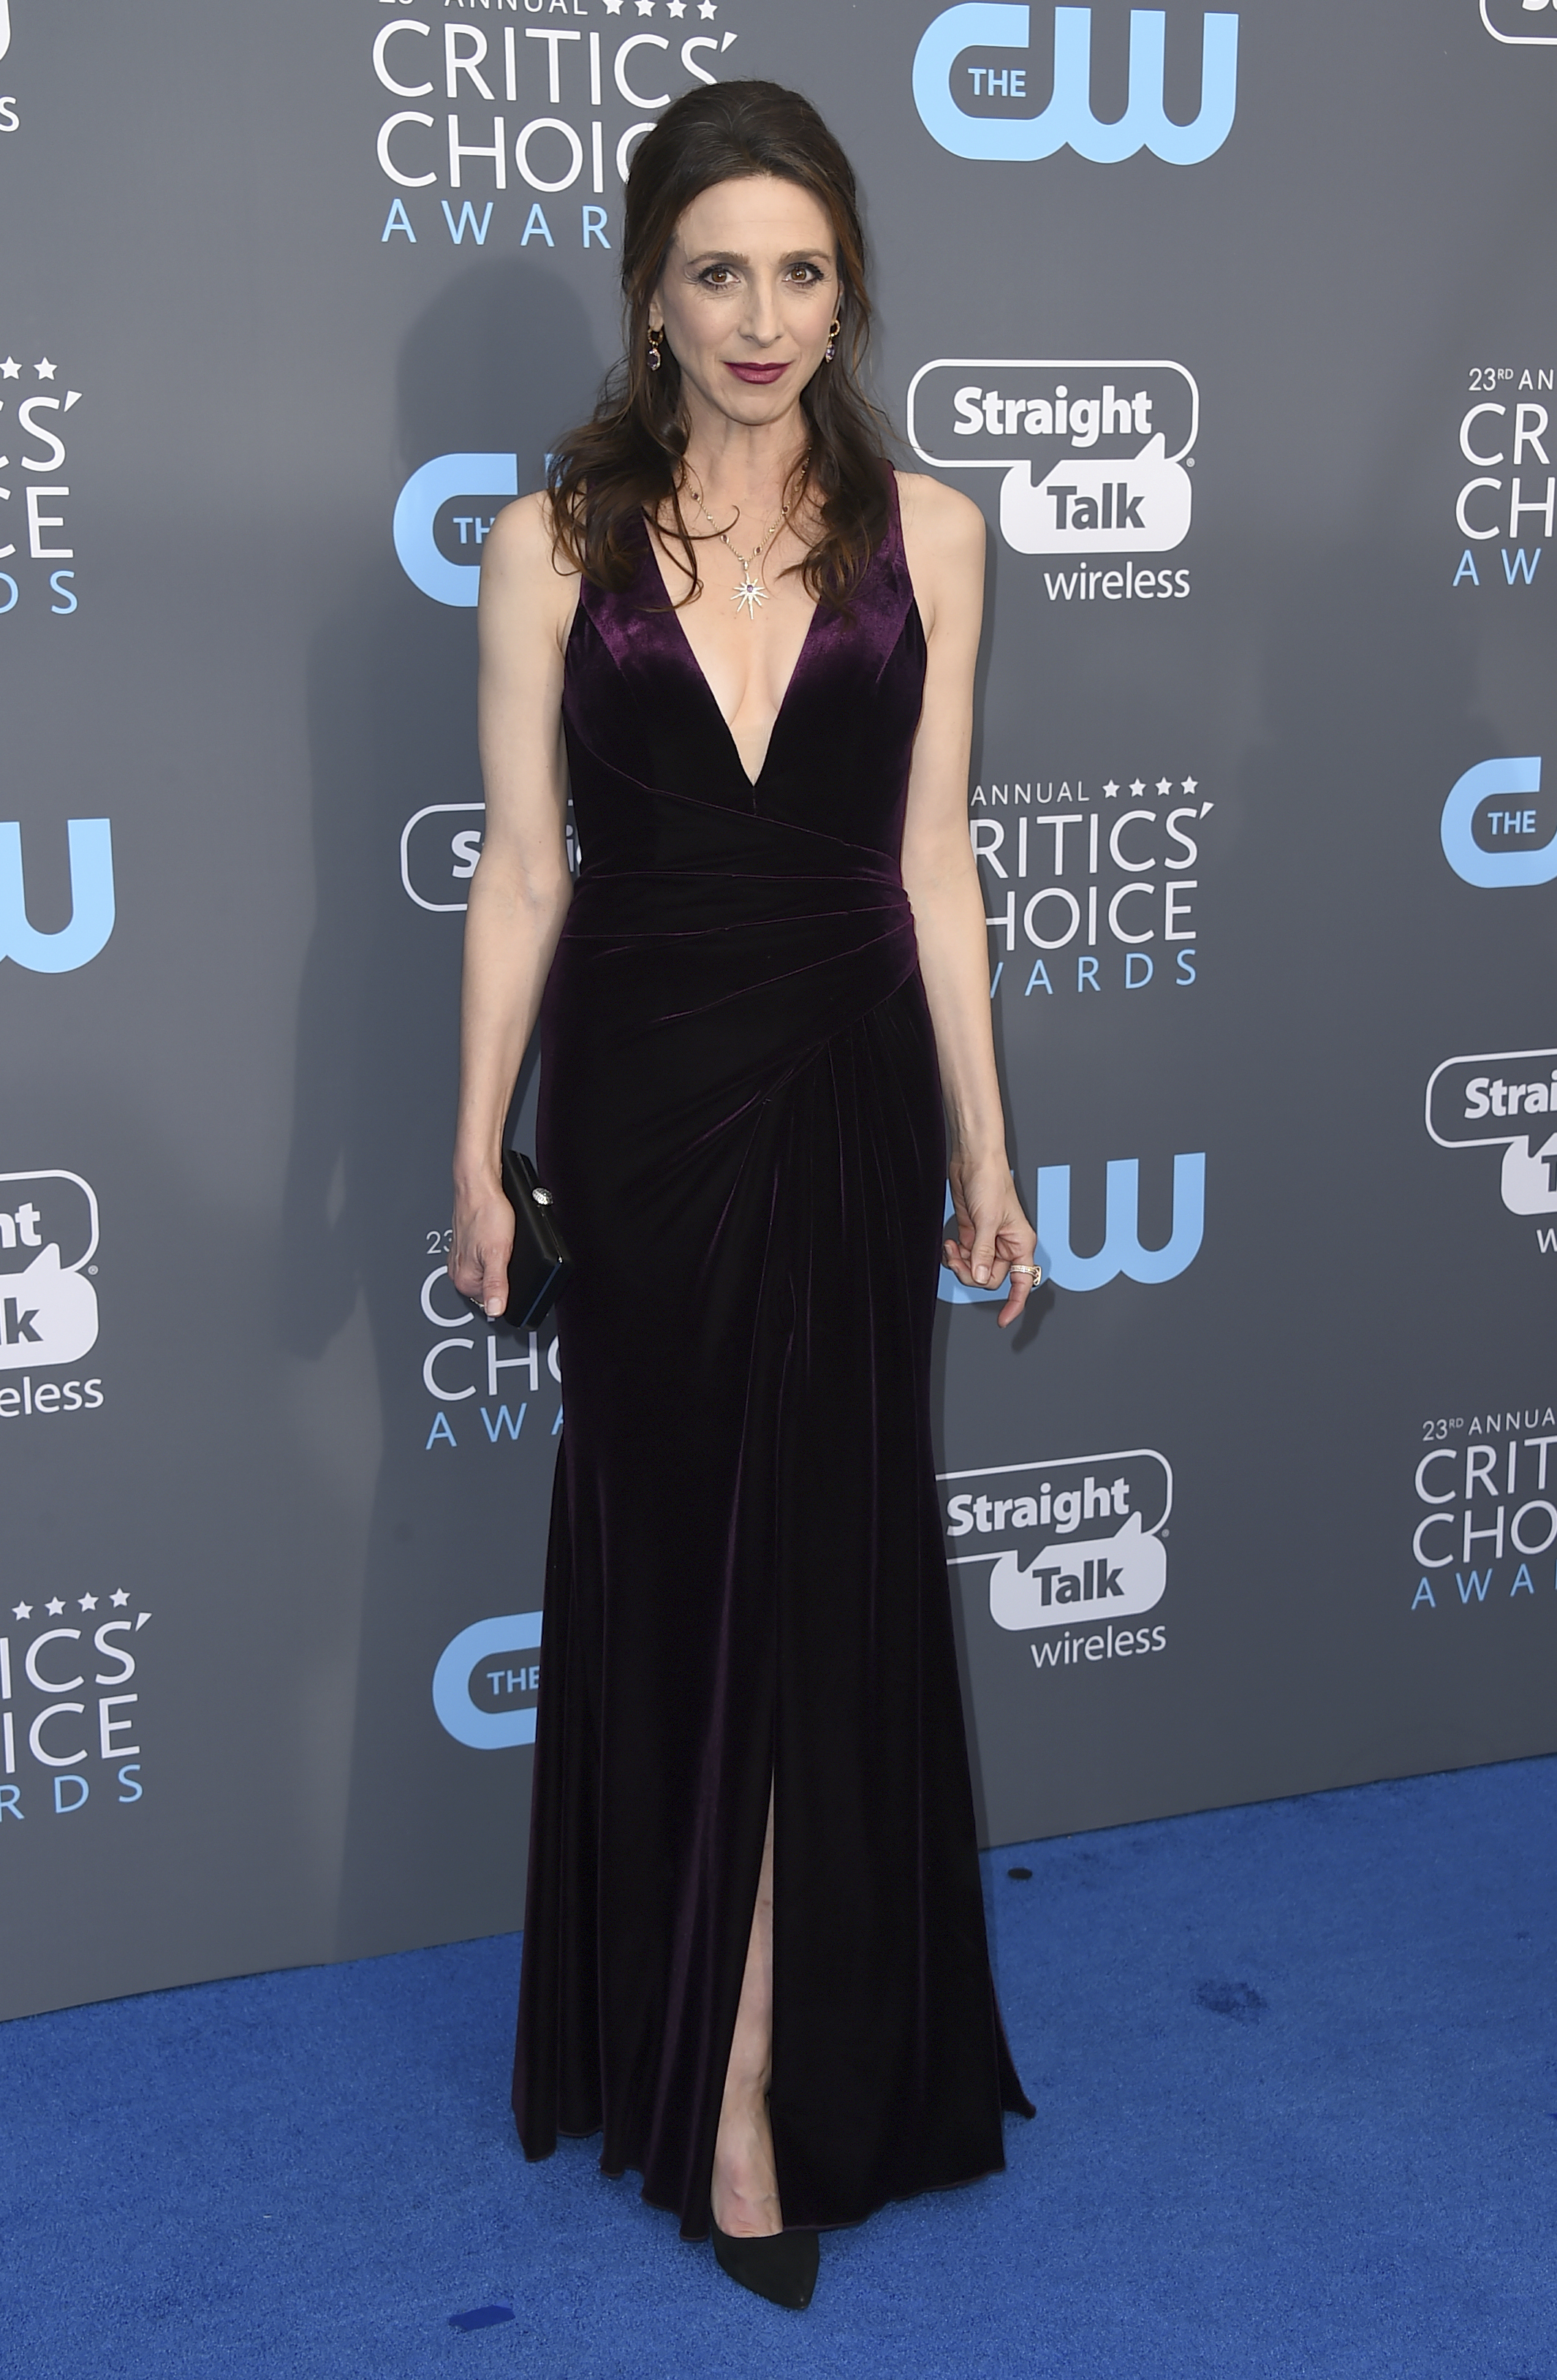 <div class='meta'><div class='origin-logo' data-origin='AP'></div><span class='caption-text' data-credit='Jordan Strauss/Invision/AP'>Marin Hinkle arrives at the 23rd annual Critics' Choice Awards at the Barker Hangar on Thursday, Jan. 11, 2018, in Santa Monica, Calif.</span></div>